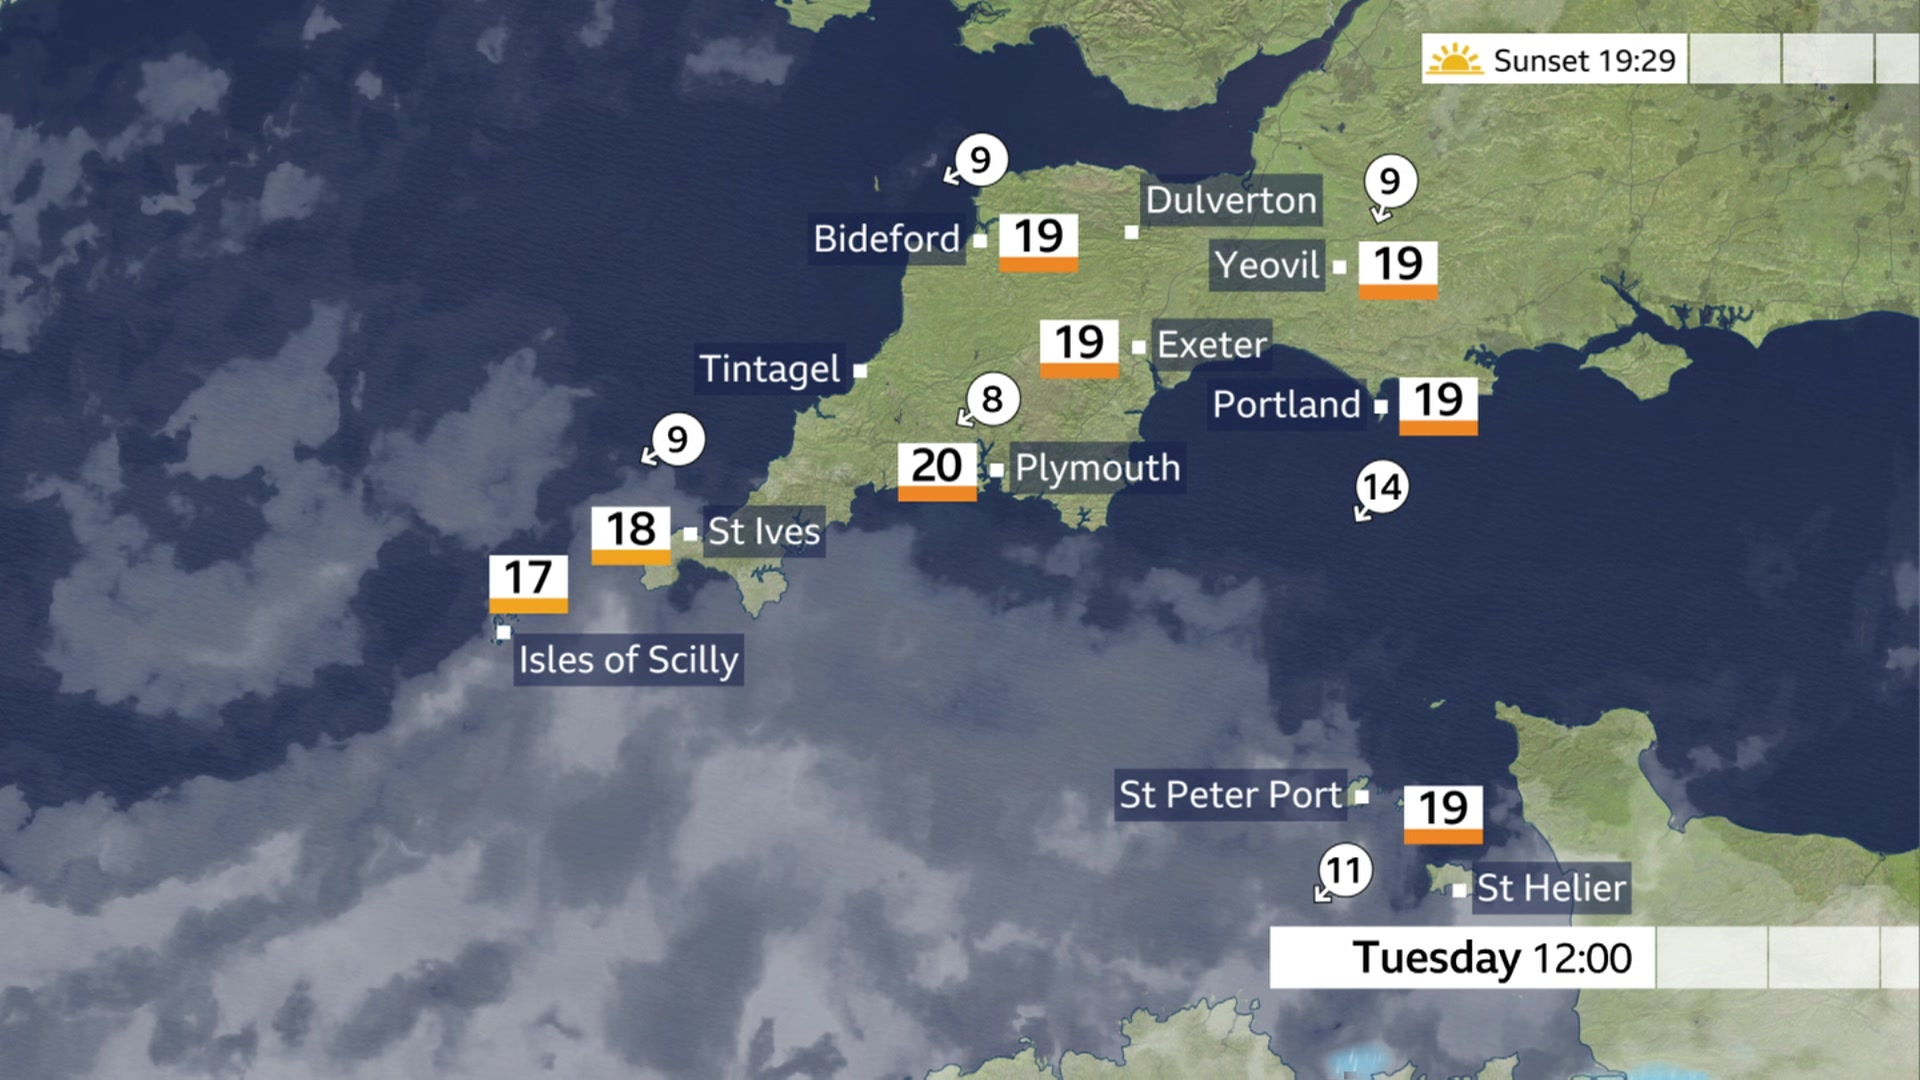 Devon and Cornwall weather: A dry day with sunny spells